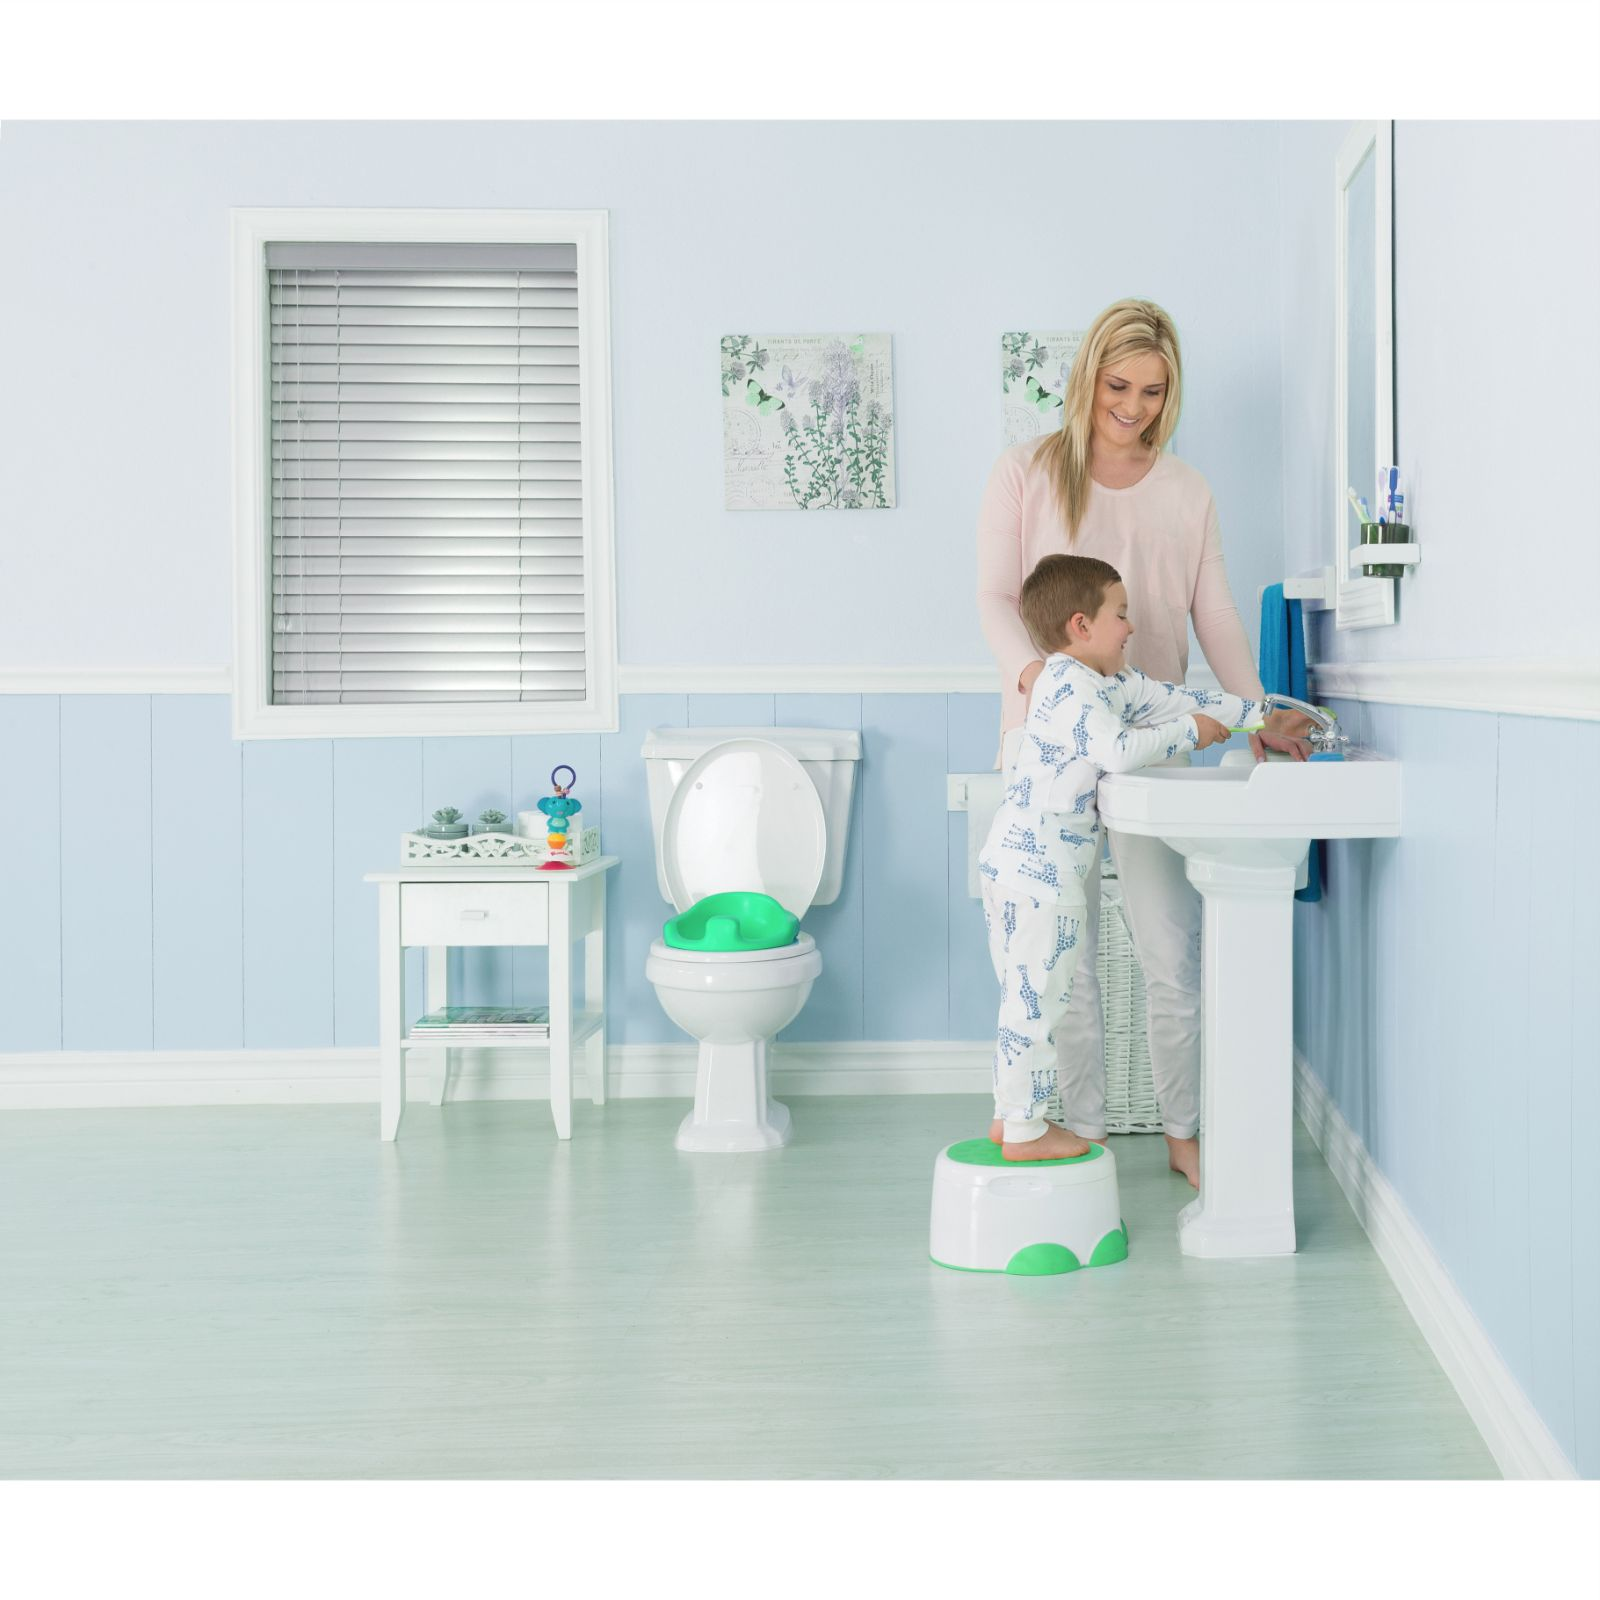 Bumbo 3-in-1 Step \'N Potty - Aqua | Buy at Online4baby